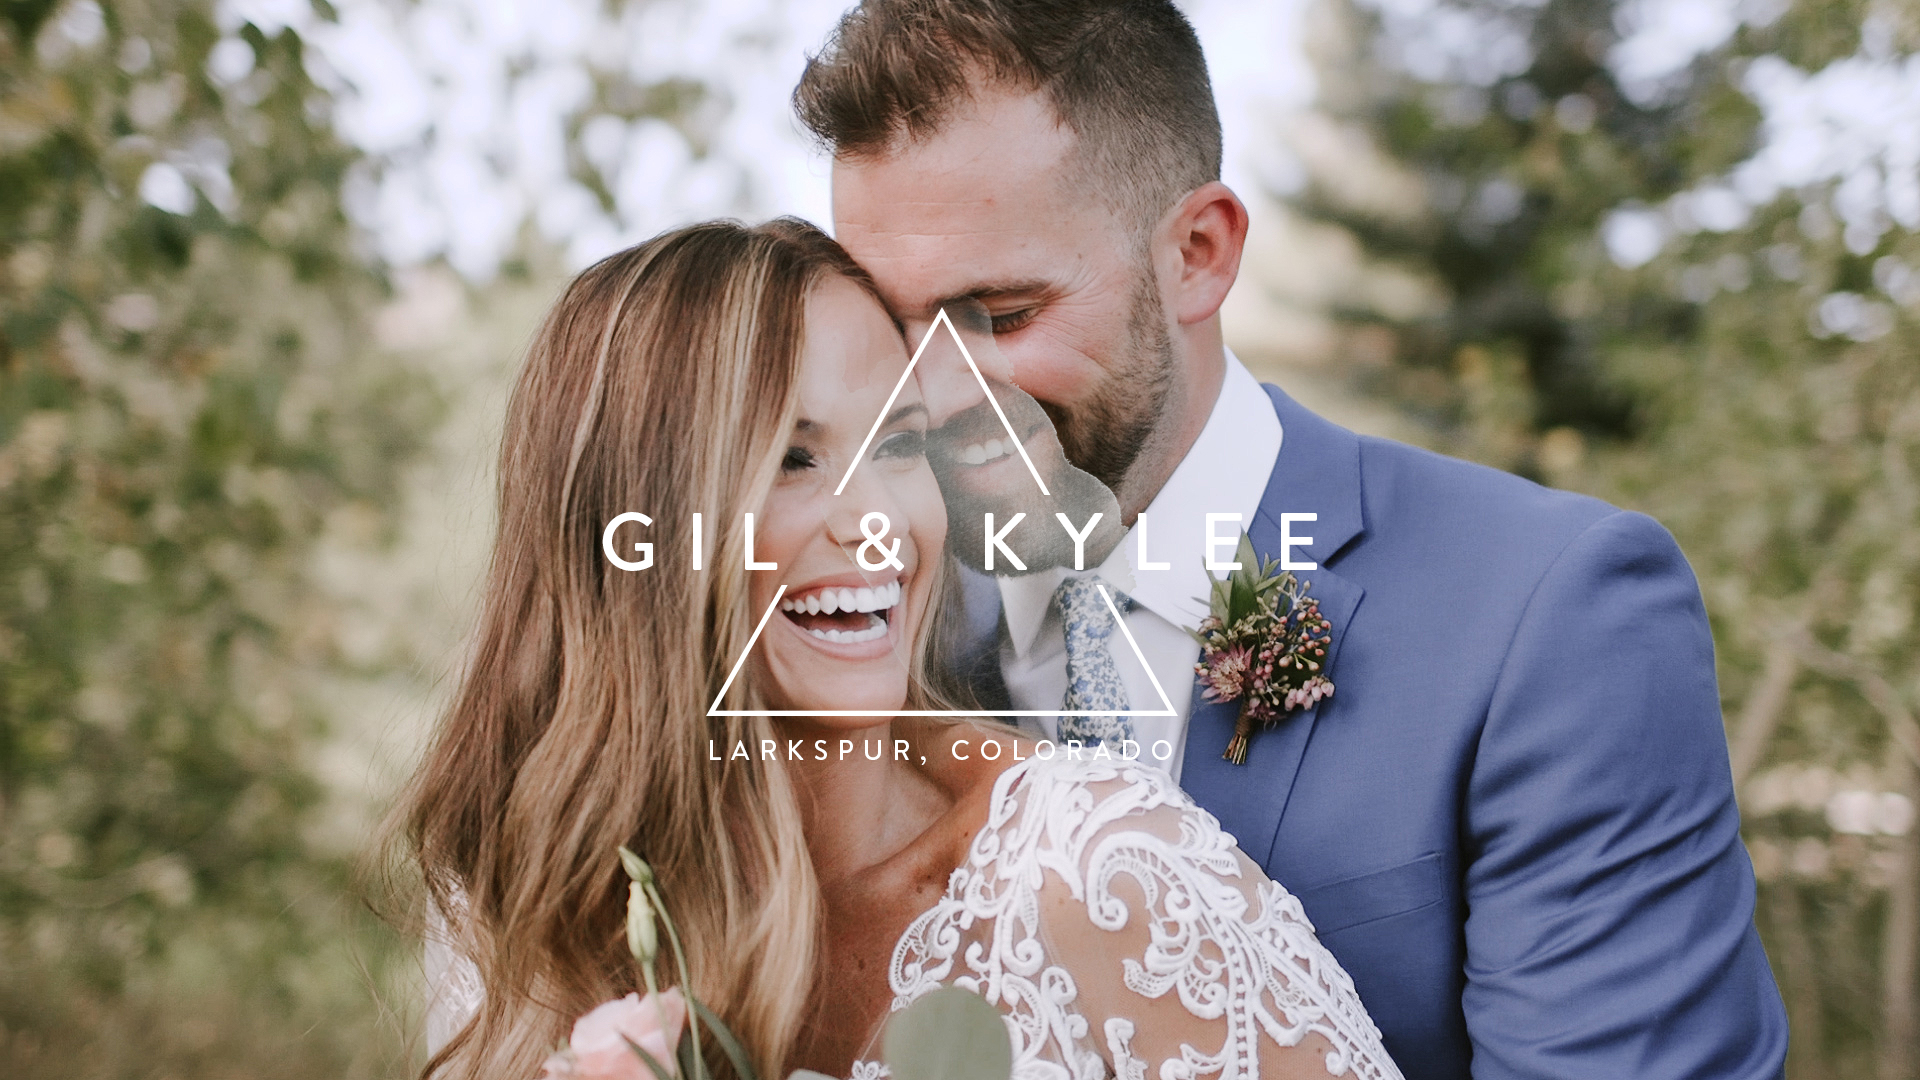 Kylee + Gil | Larkspur, Colorado | Spruce Mountain Ranch